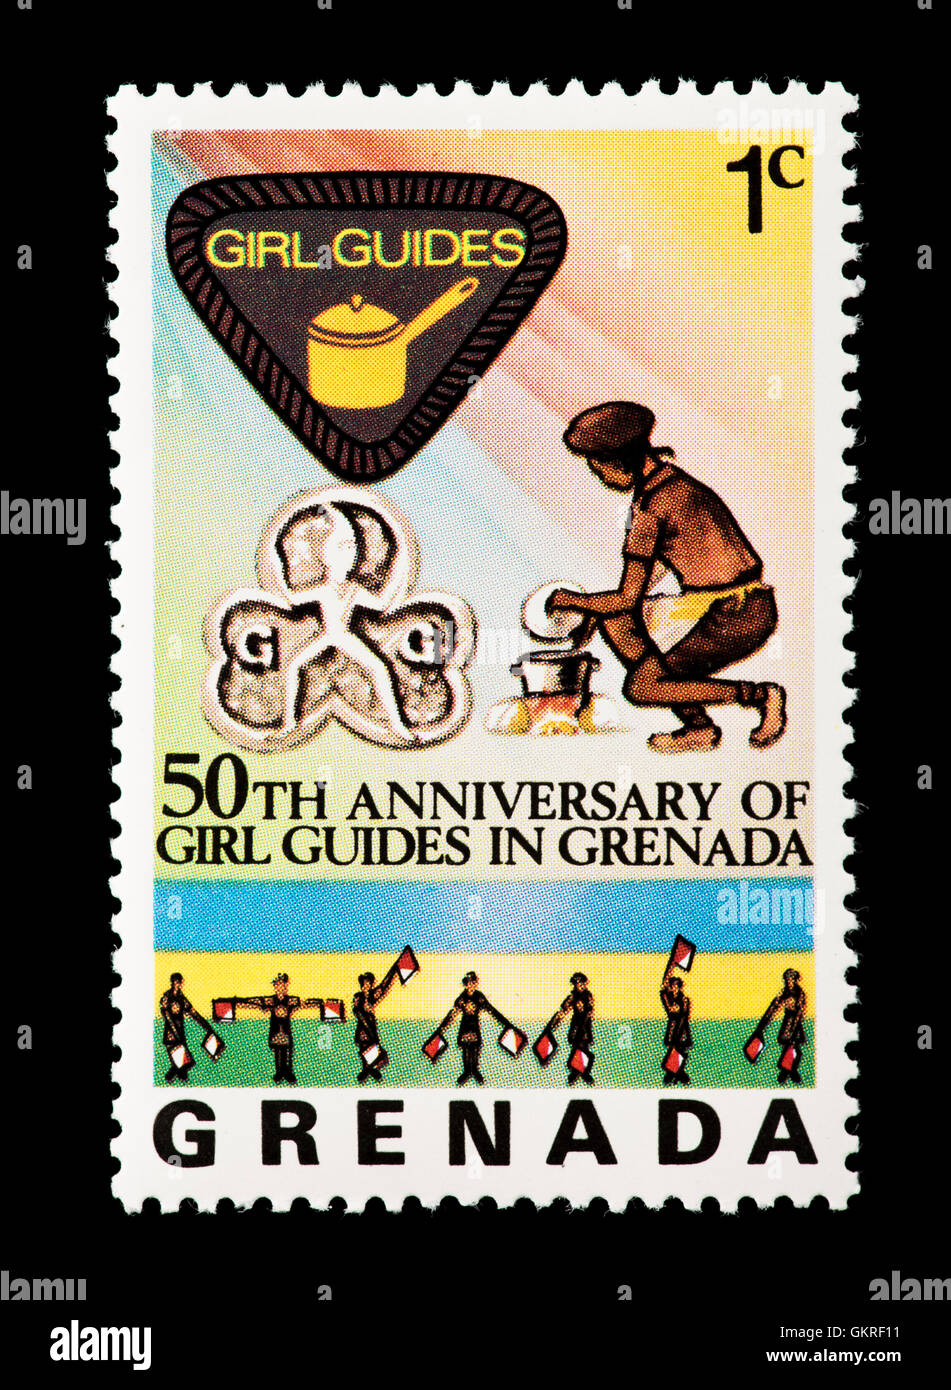 Postage Stamp From Grenada Depicting Girl Guides Issued For Its 50th Anniversary